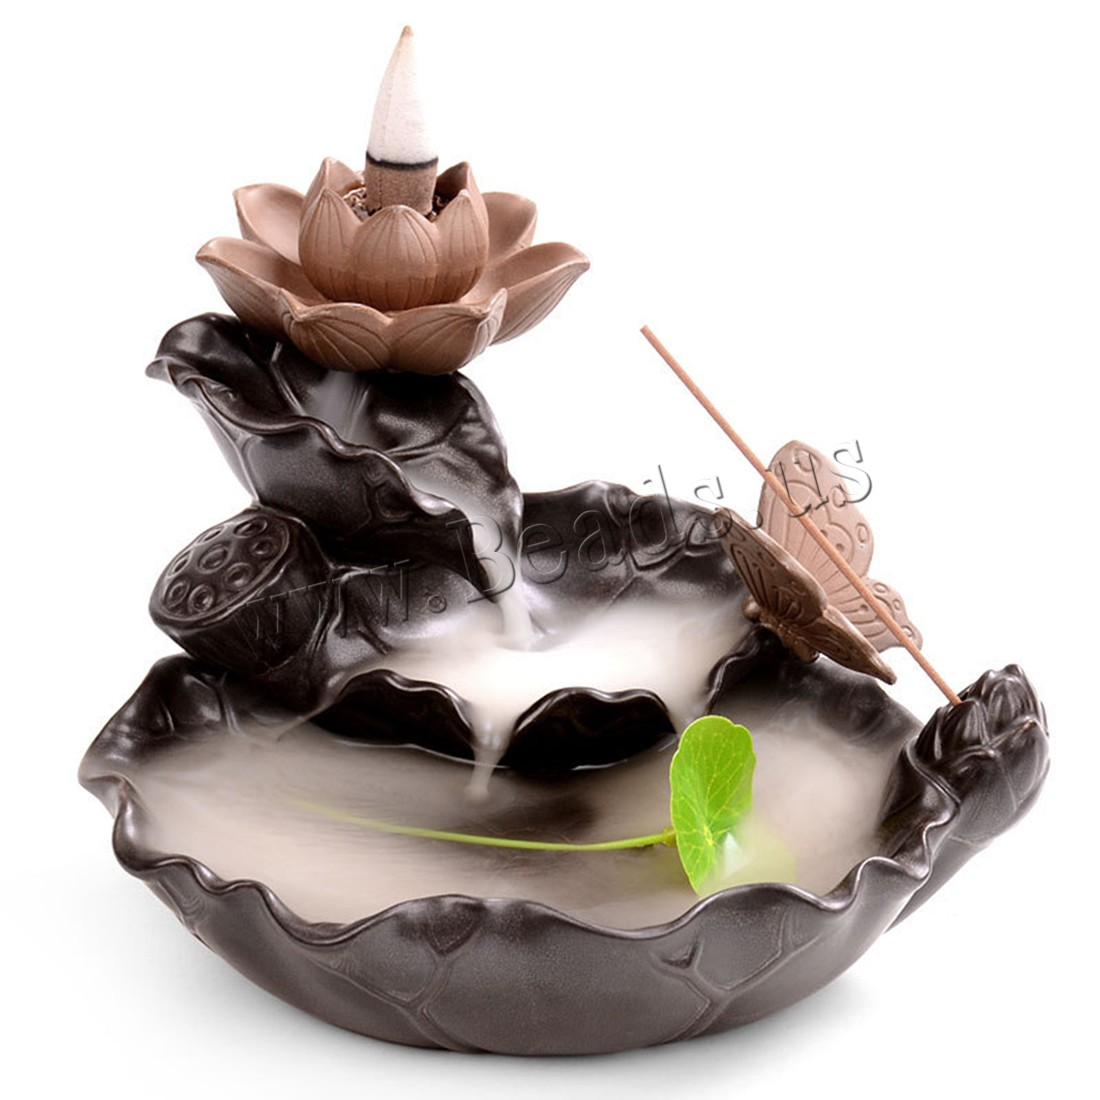 Creative Incense Burner Holder Ceramic Lotus Backflow Censer Smoke Waterfall Aroma Burner Decoration Use In Home Office Teahouse in Incense Incense Burners from Home Garden